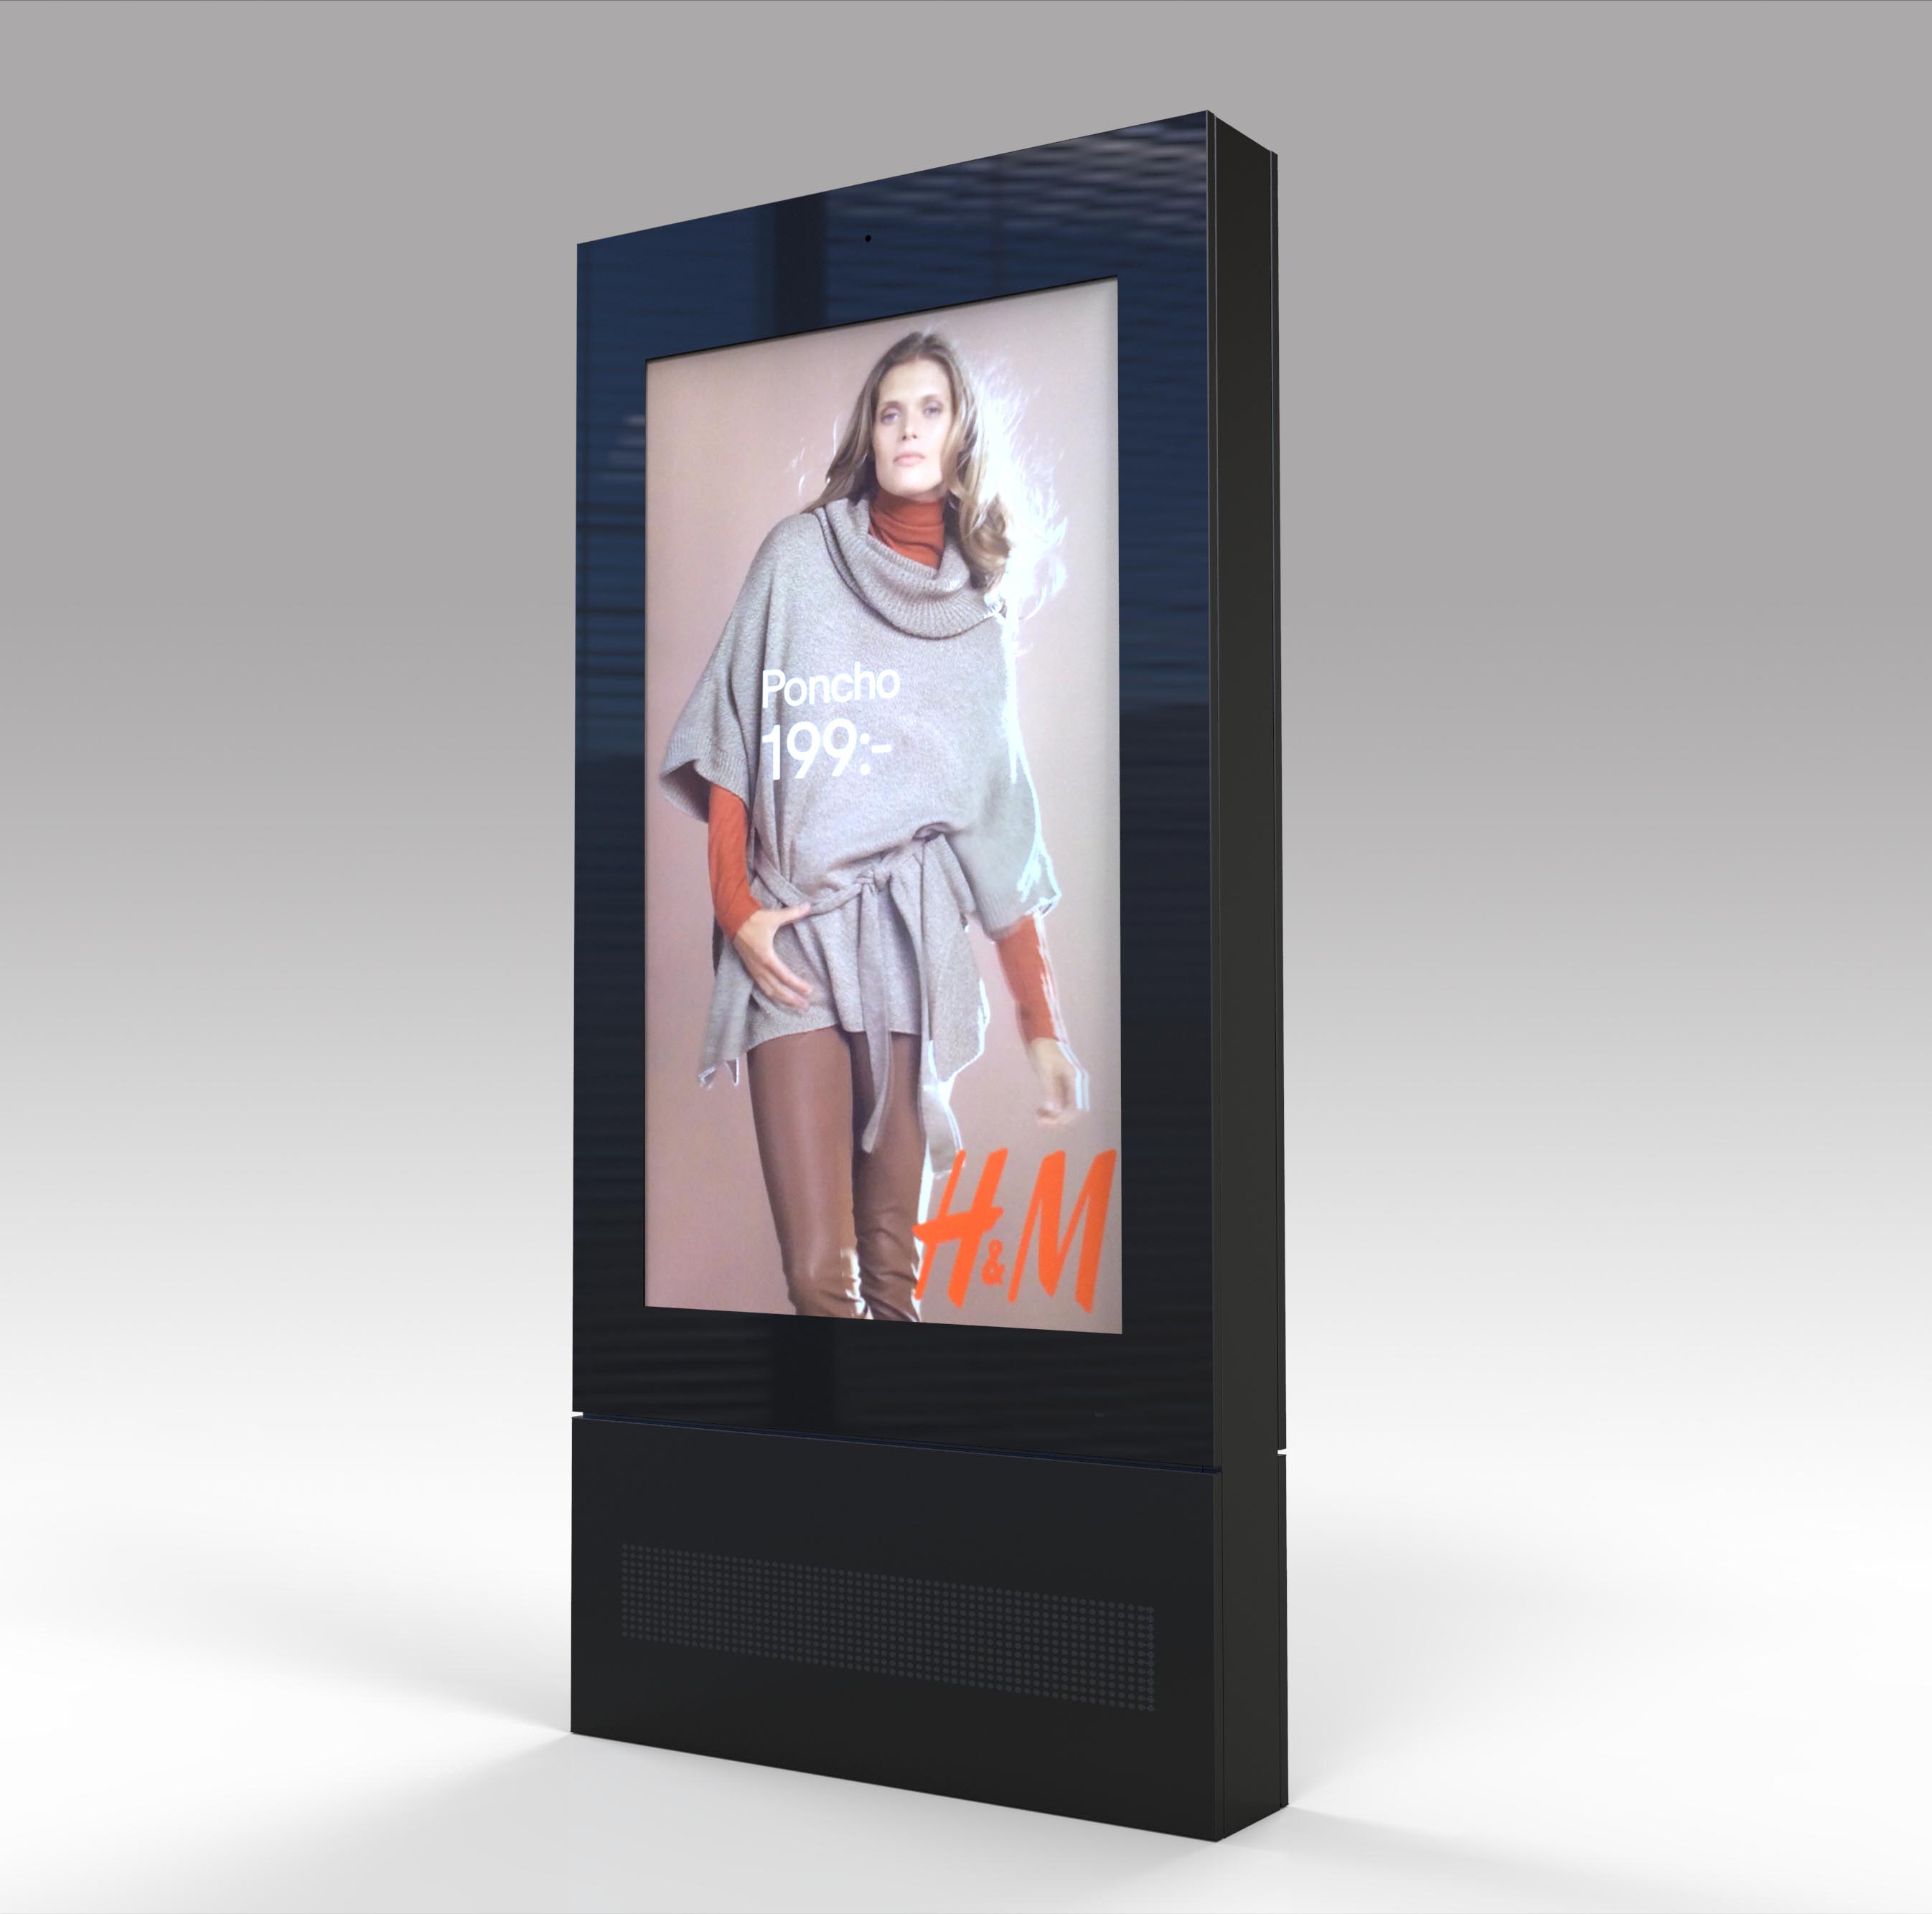 65 inch IP65 waterproof full HD pure outdoor digital signage for advertising display